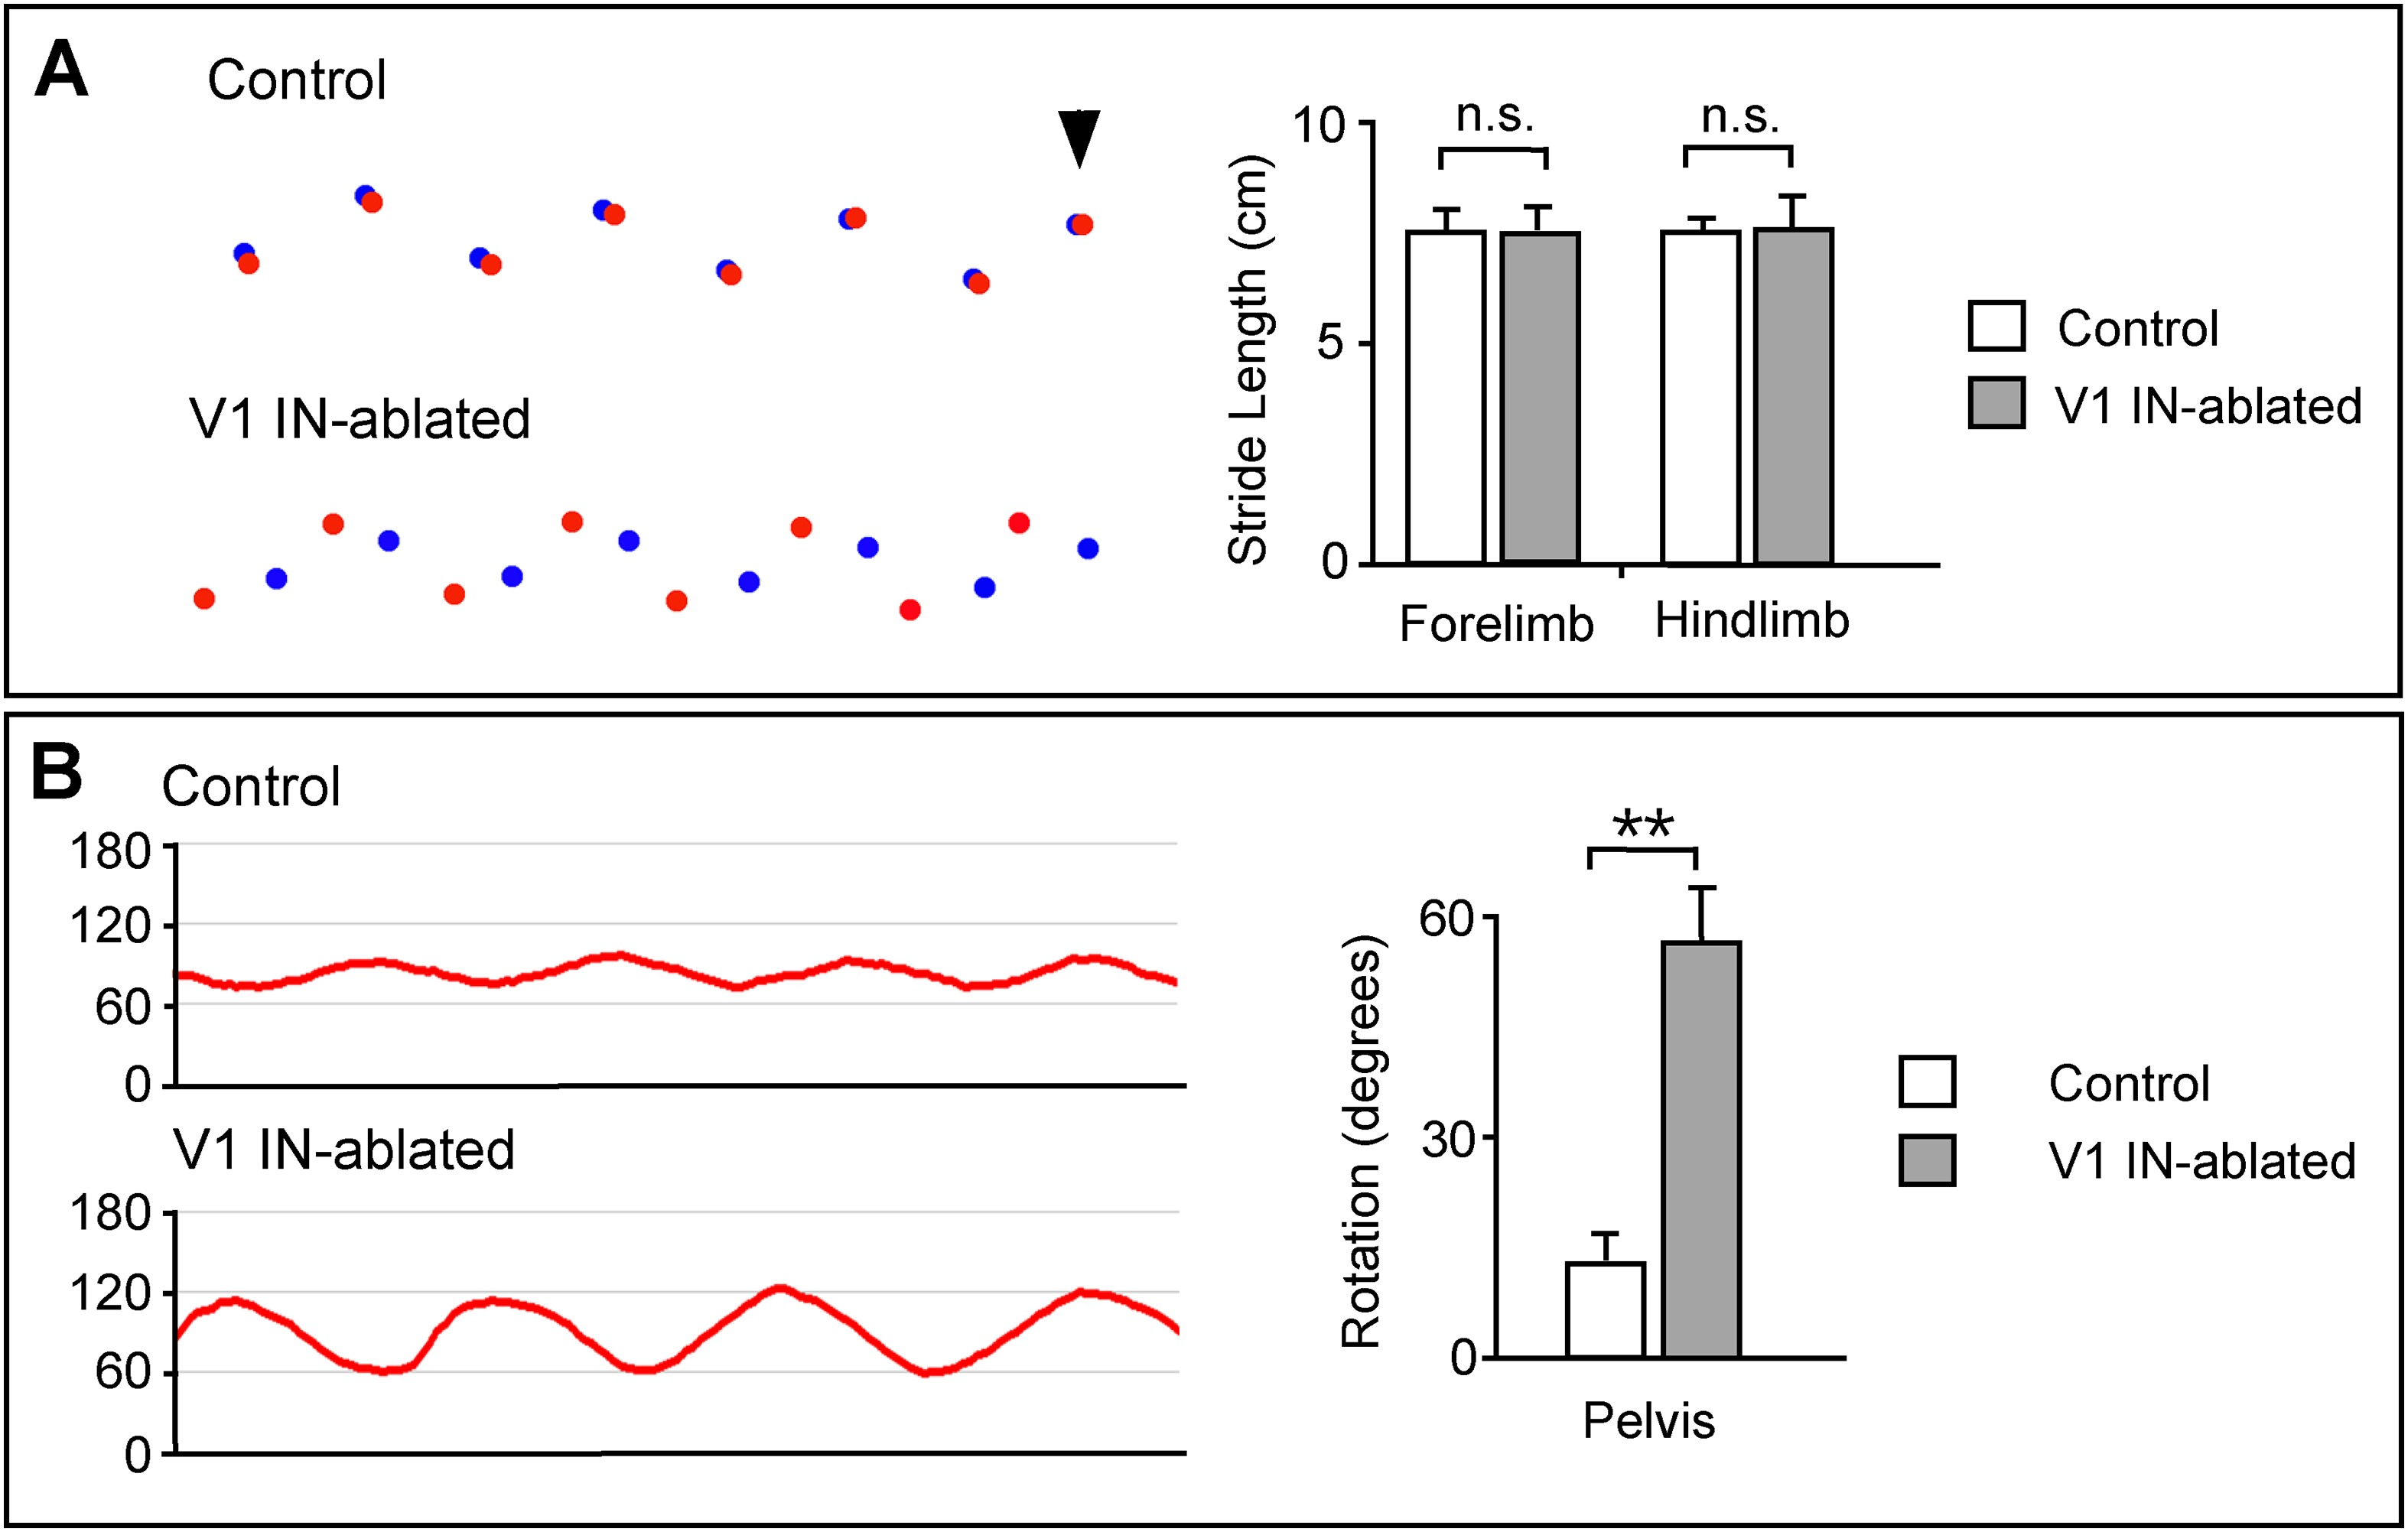 A genetically defined asymmetry underlies the inhibitory